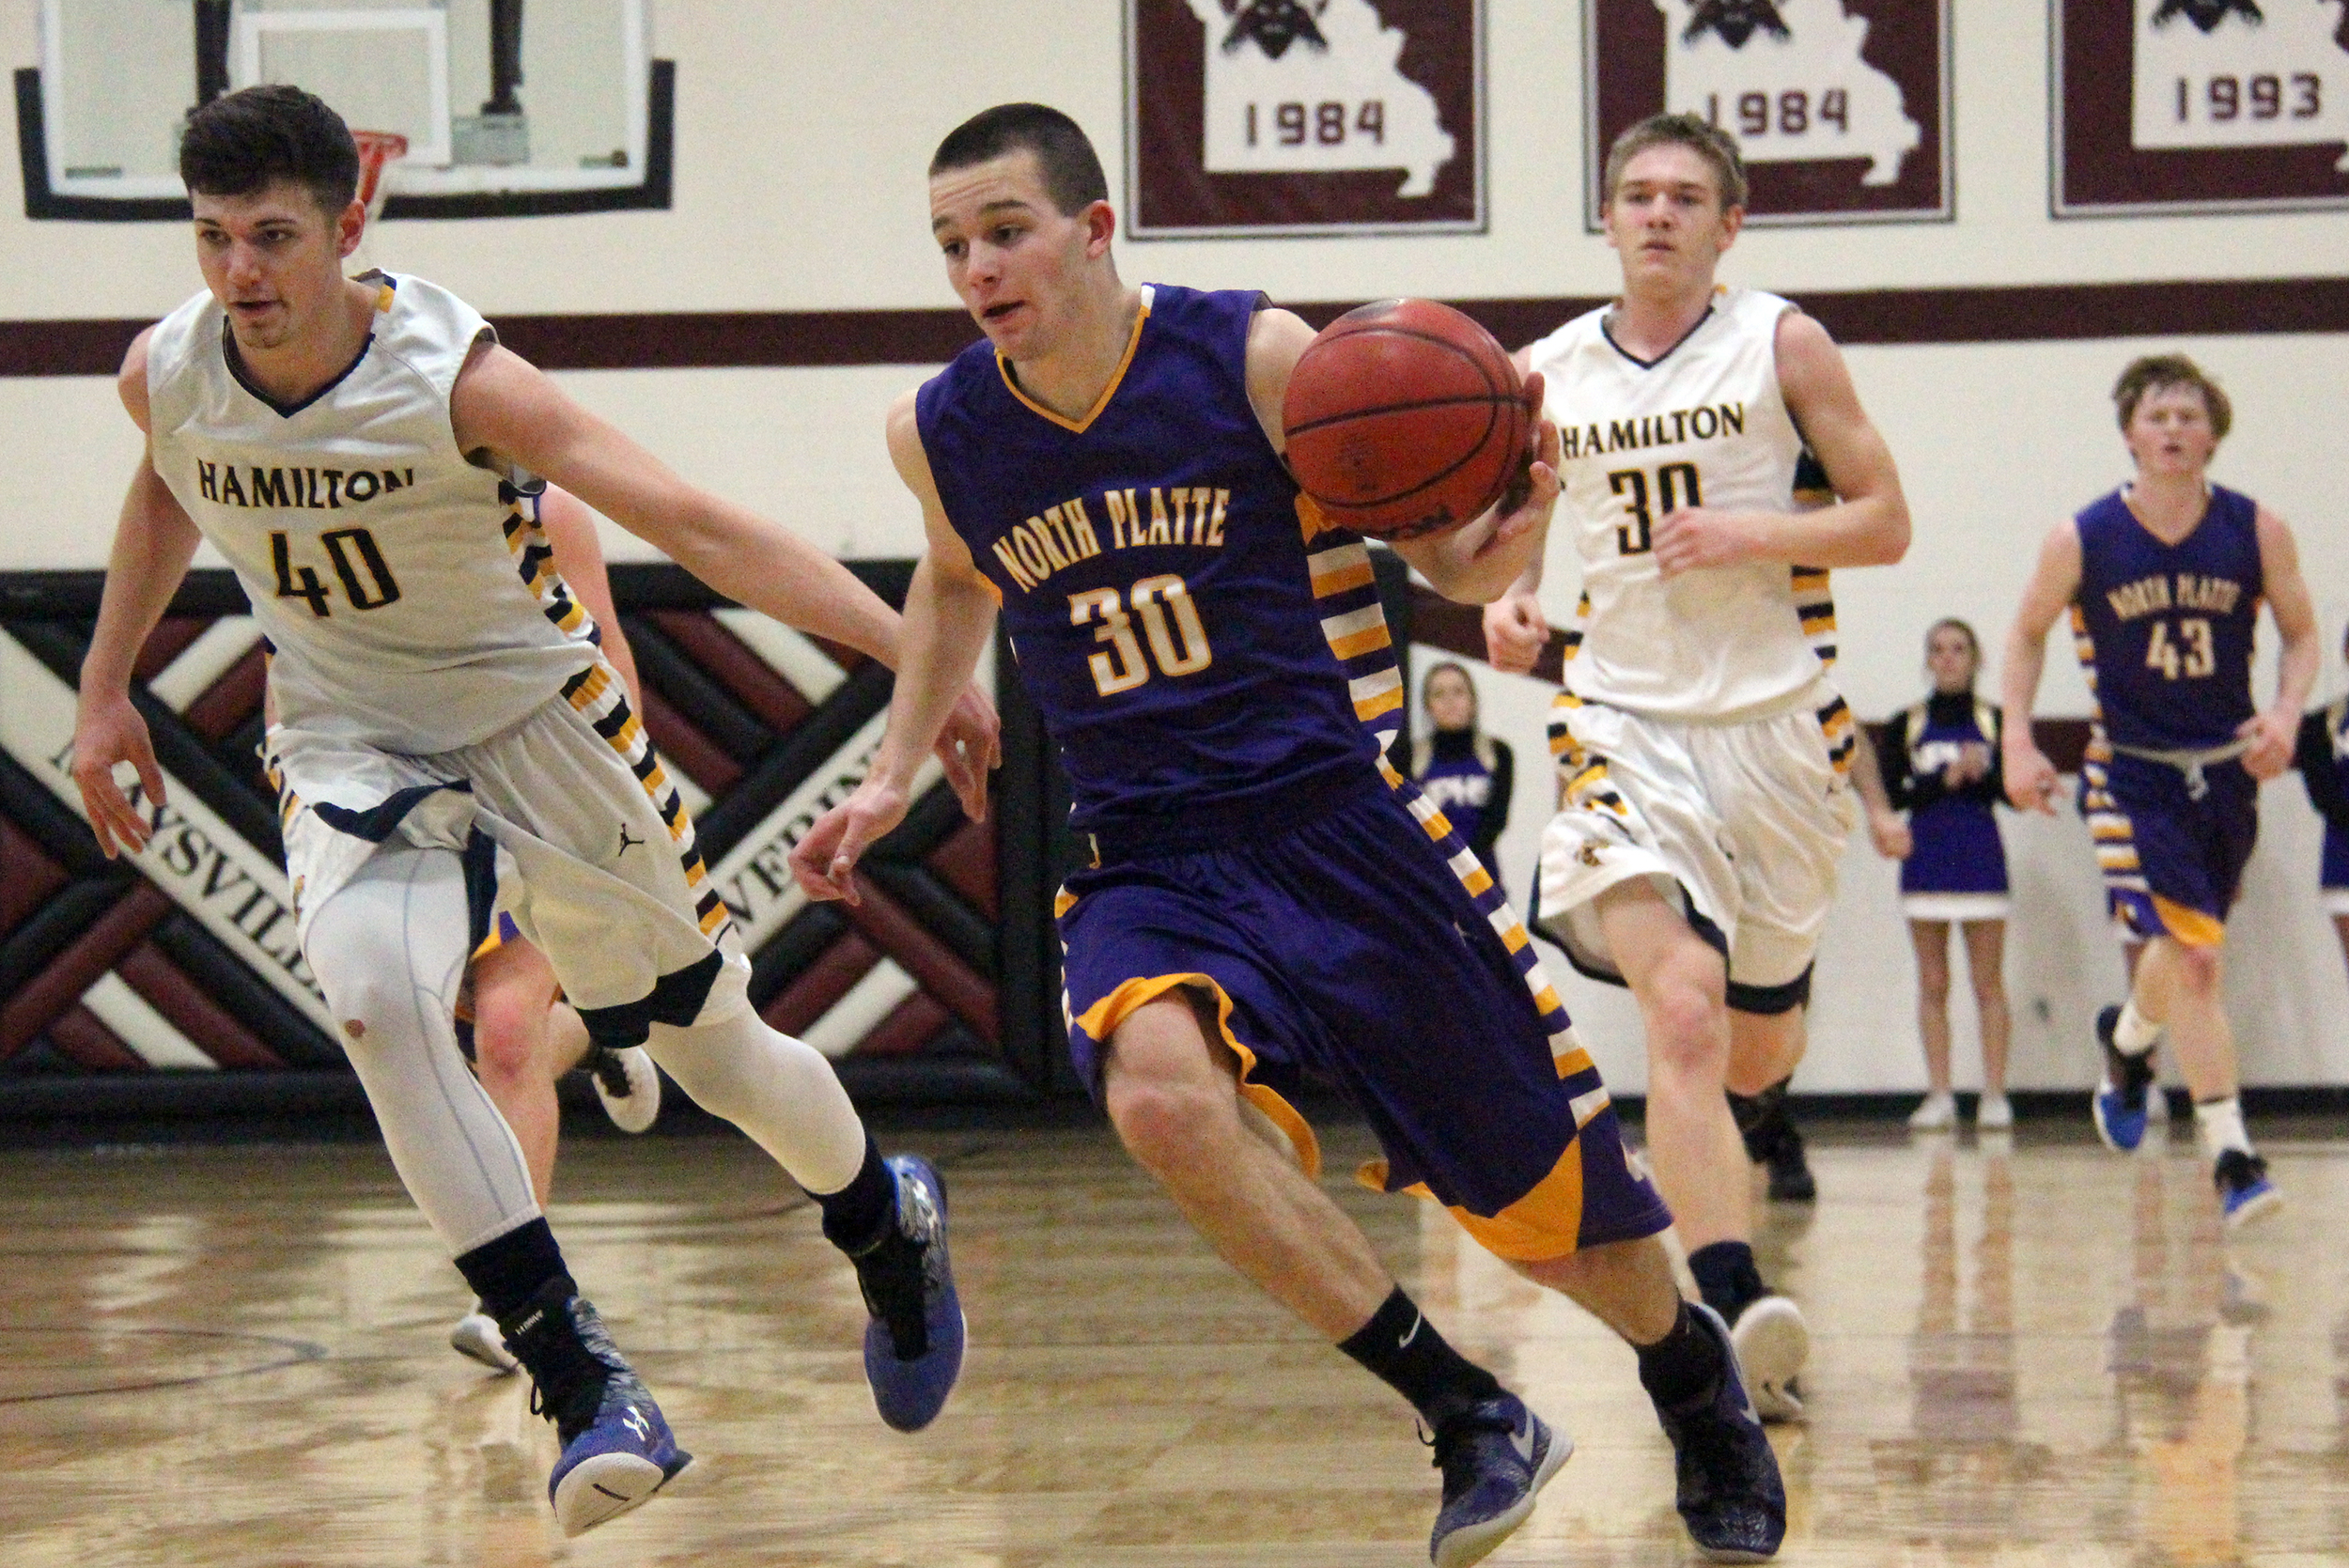 ROSS MARTIN/Citizen photo North Platte senior forward Kyle Ewing, center, dribbles up the court in a Class 2 District 16 semifinal game against Hamilton on Thursday, Feb. 25 at Maysville High School in Maysville, Mo.